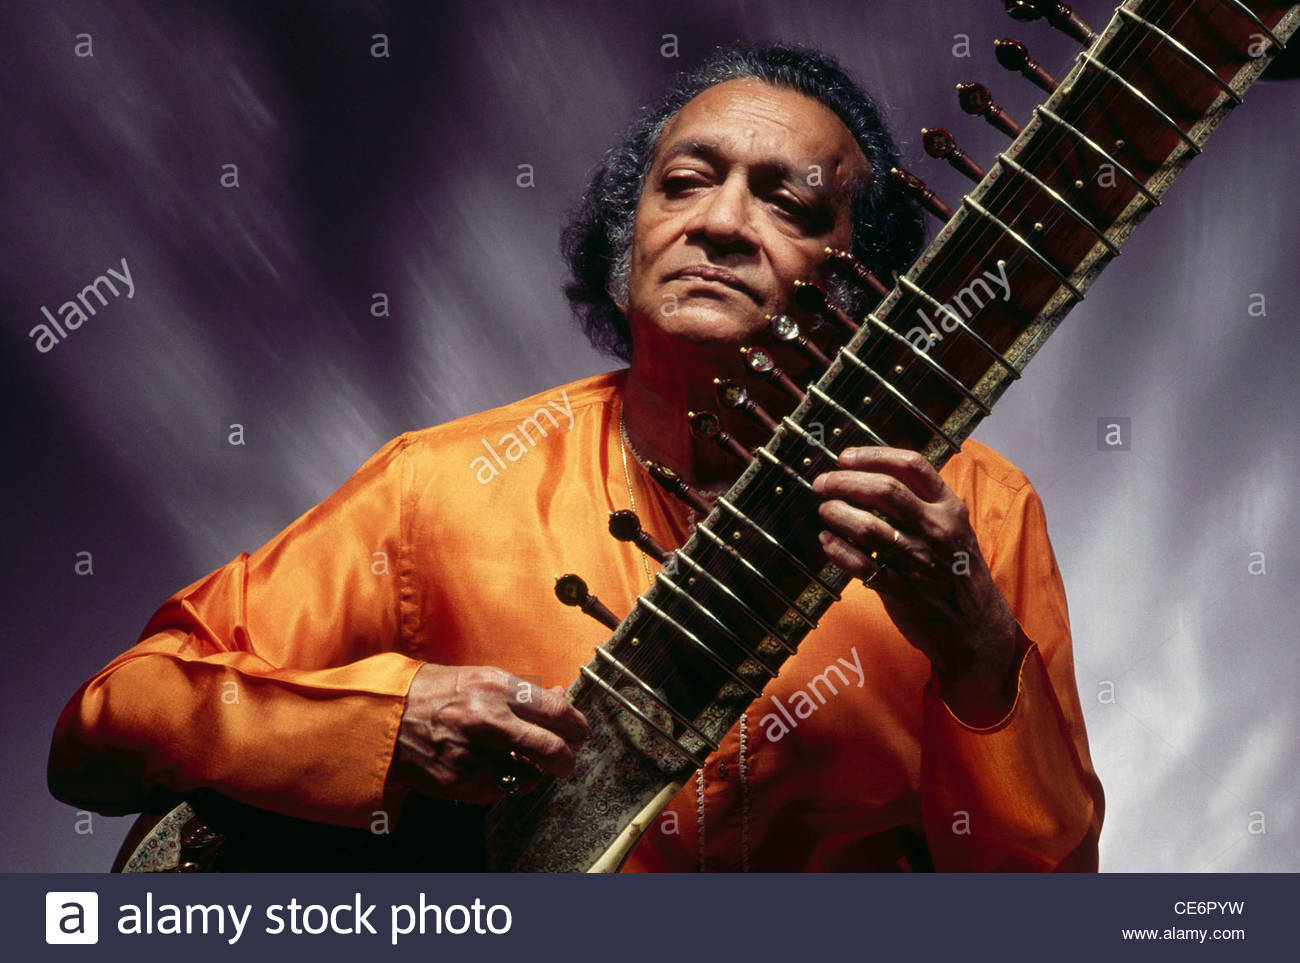 ravi-shankar-playing-string-musical-instrument-sitar-no-model-CE6PYW